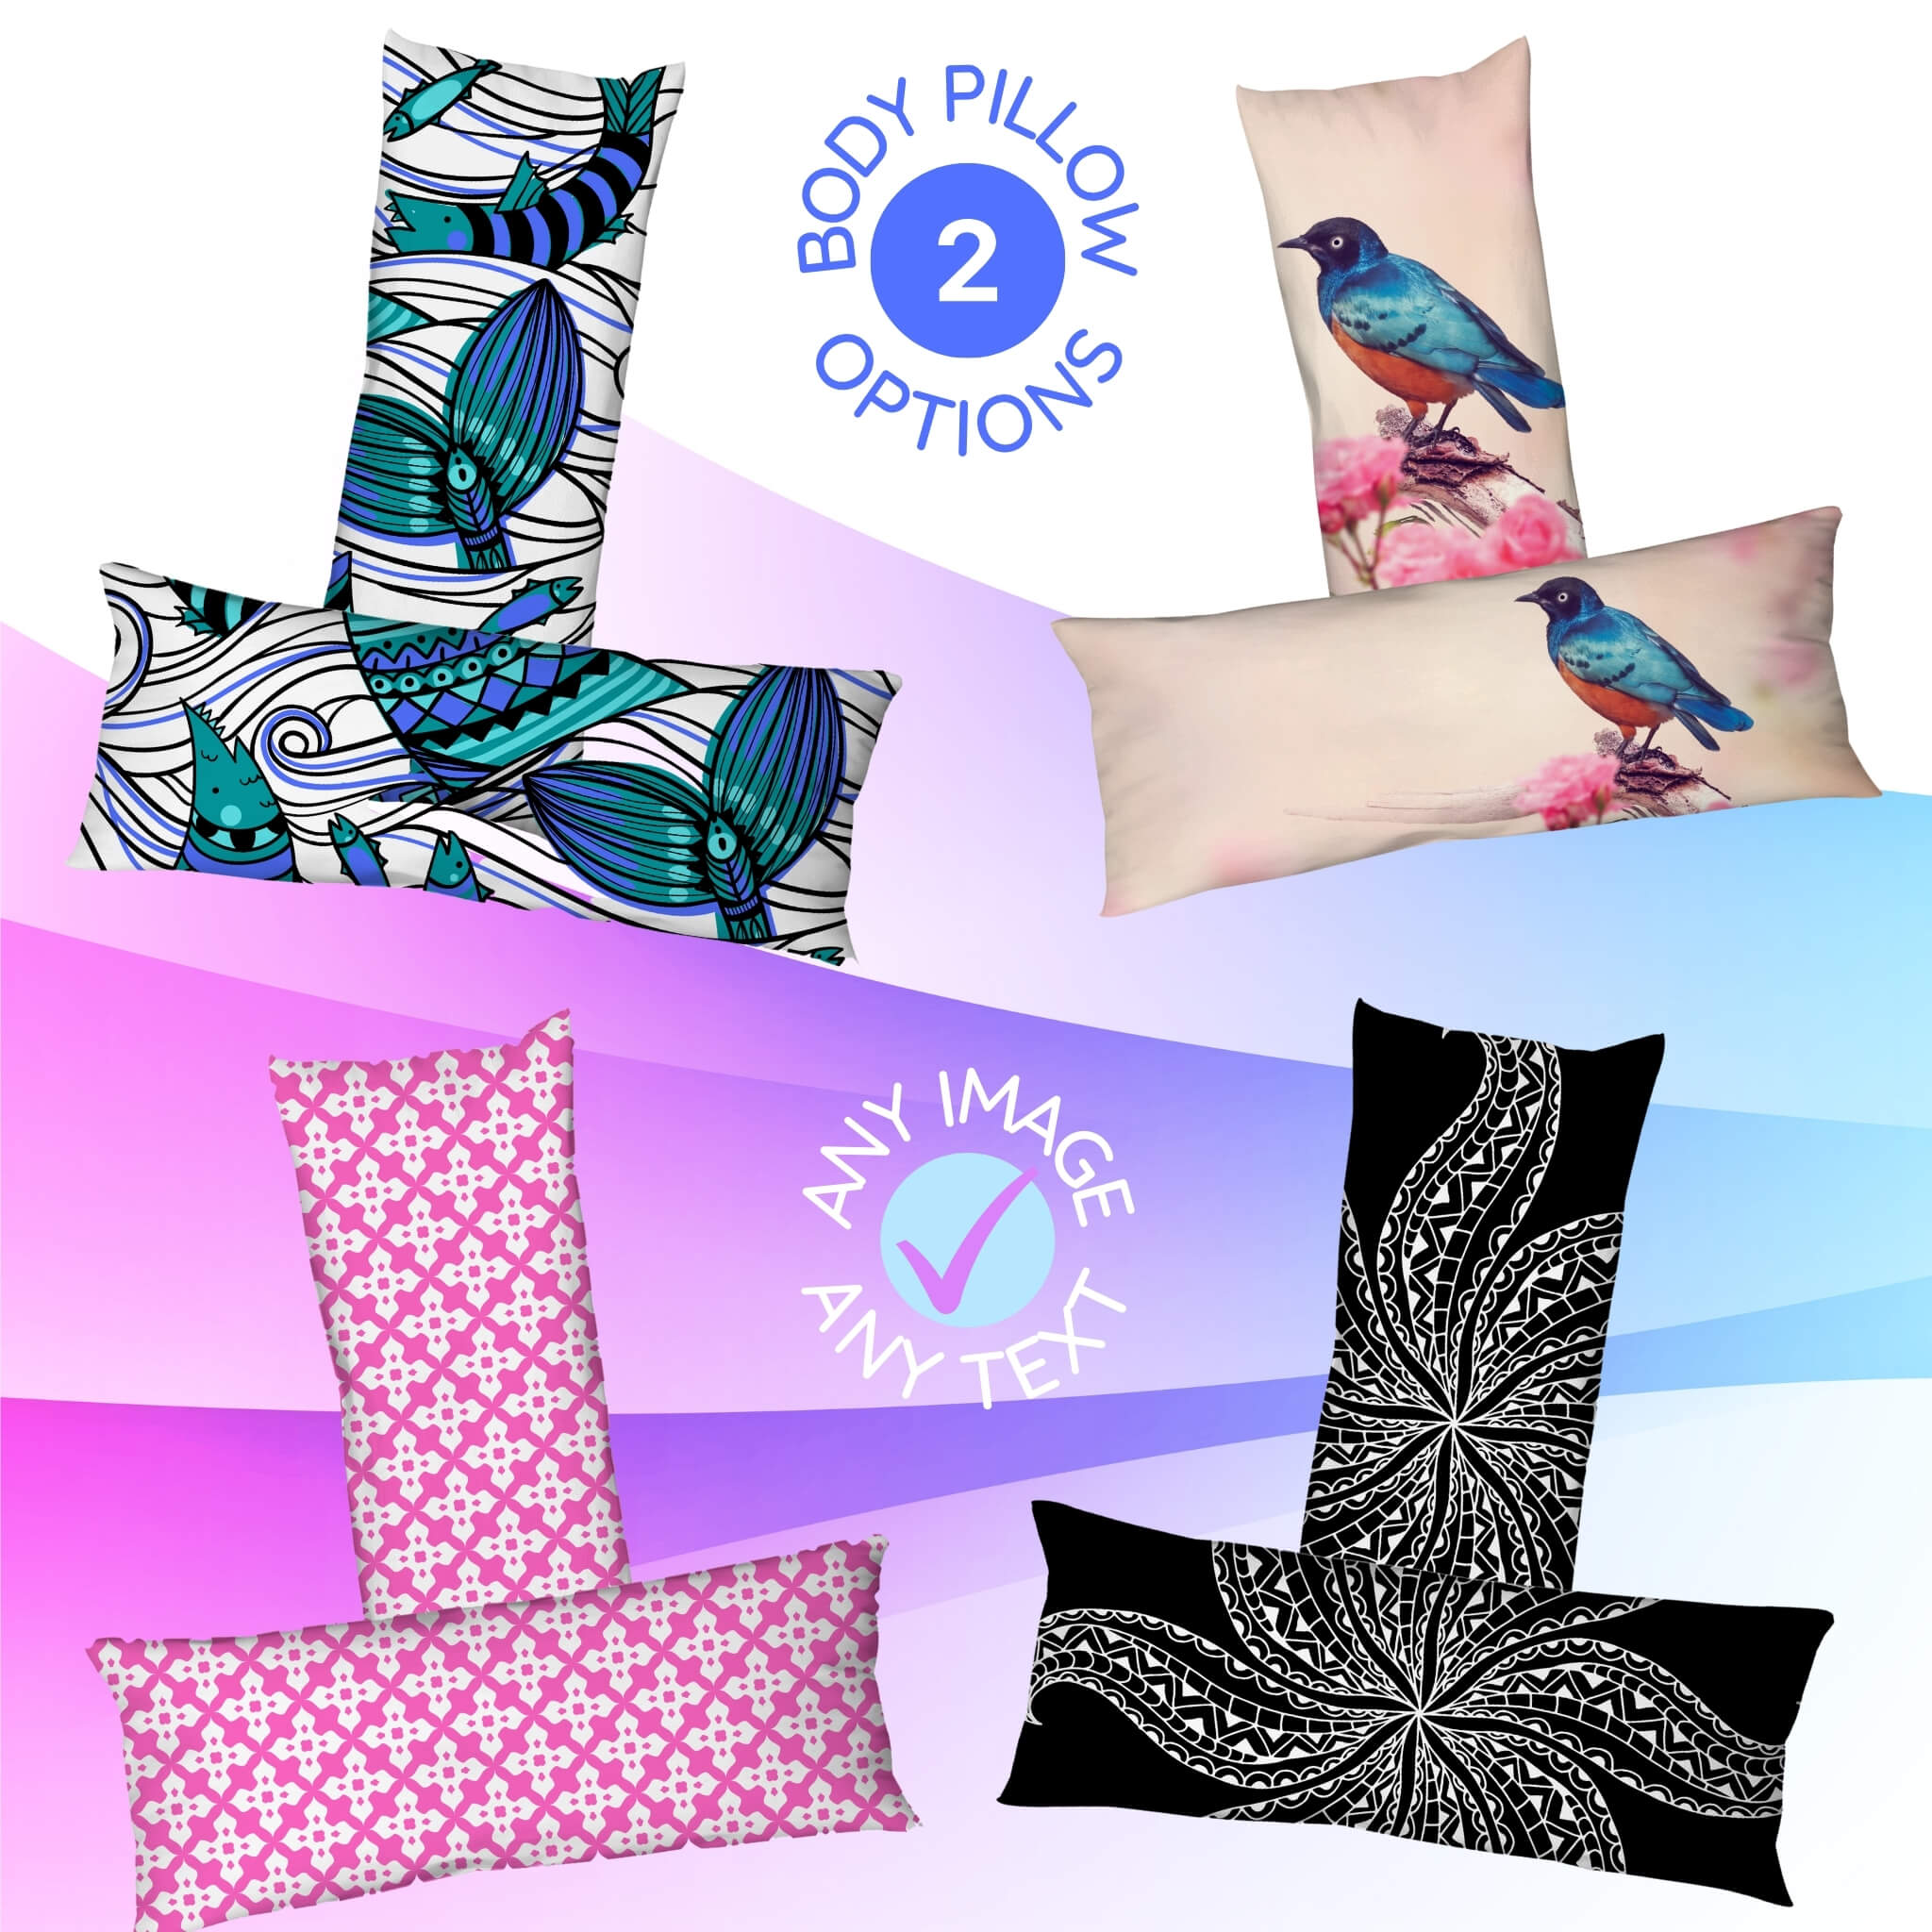 Custom 54 Inch Body Pillow I Design A Giant Pillow at Design AirPods